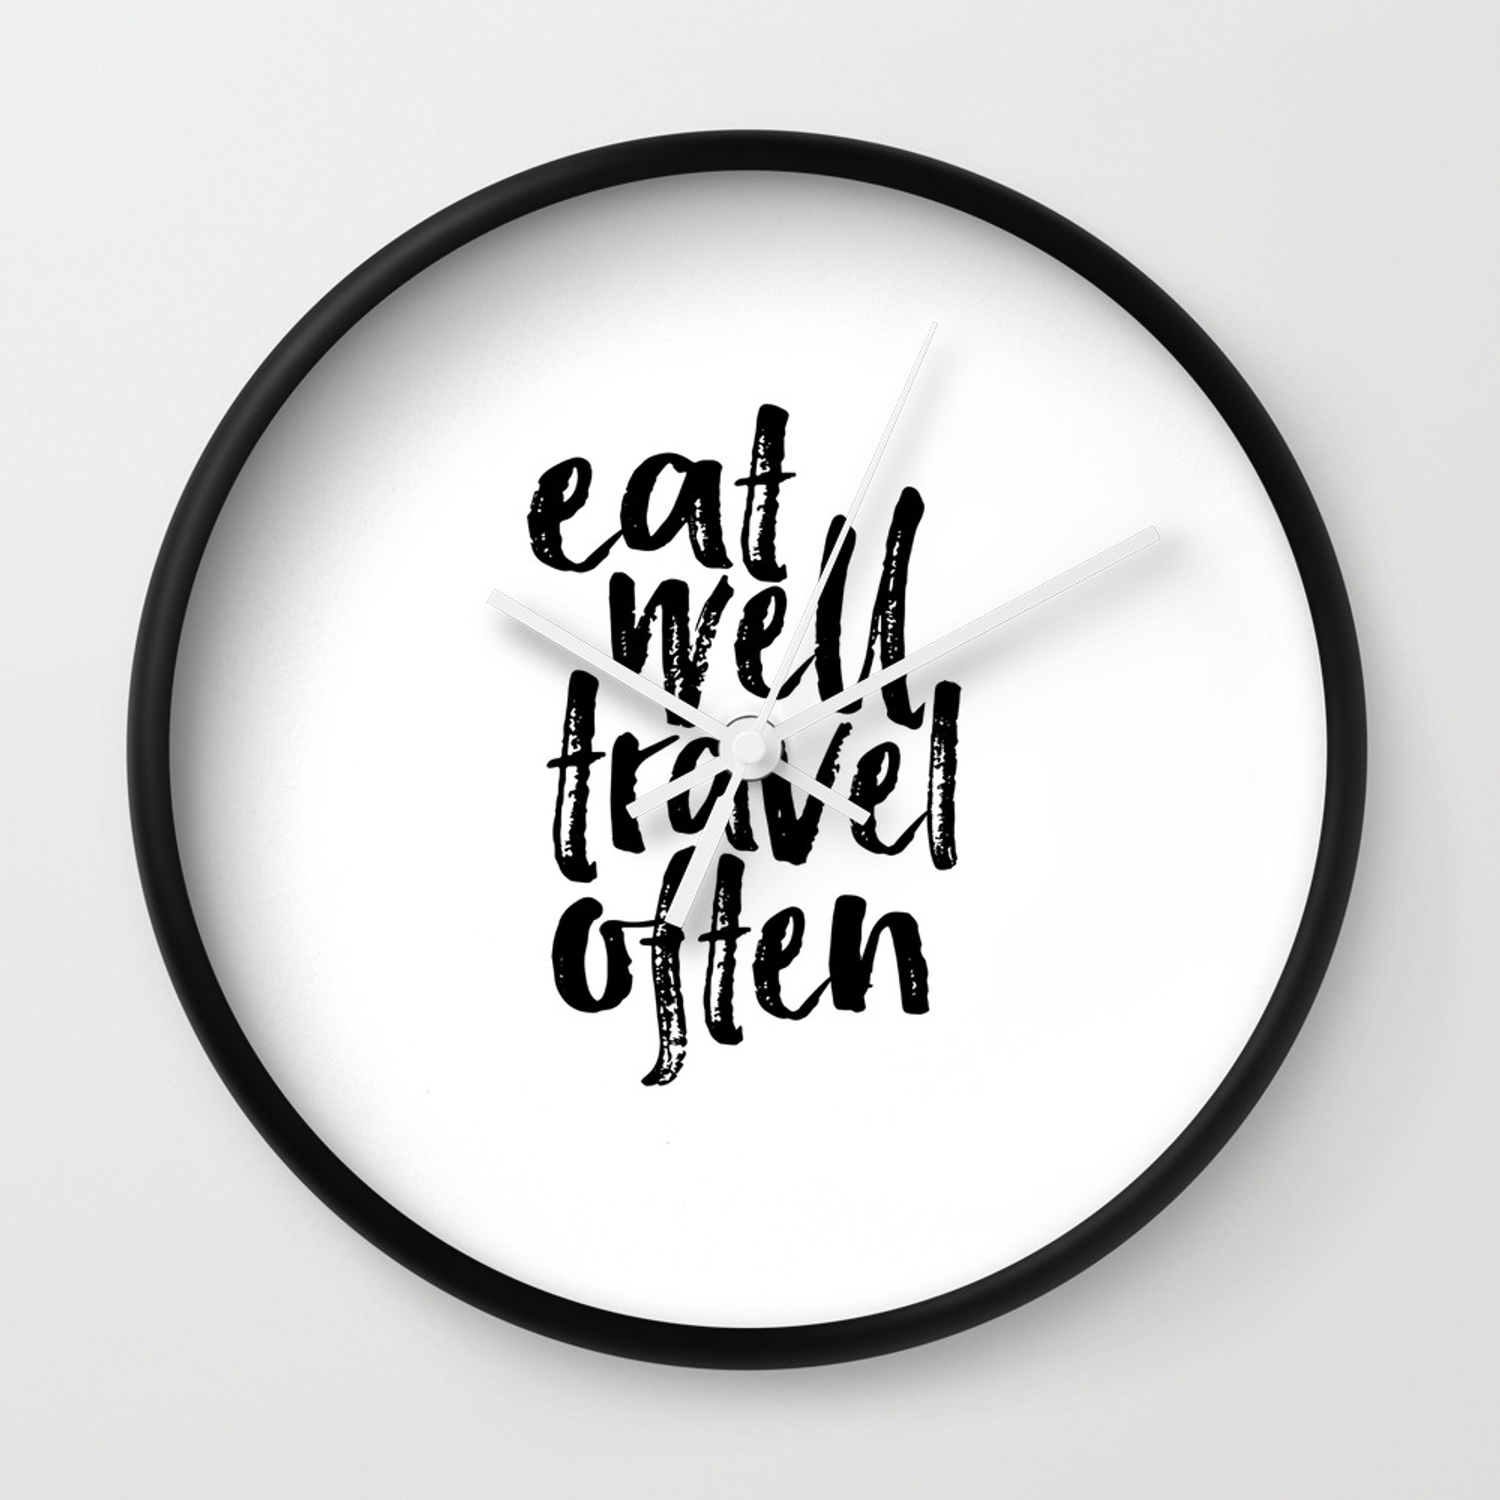 photo regarding Printable Quotes About Life known as Take in Effectively Push Generally Print Printable Wall Artwork Push estimate Daily life Prices Revolutionary Wall Artwork Motivational Wall Clock